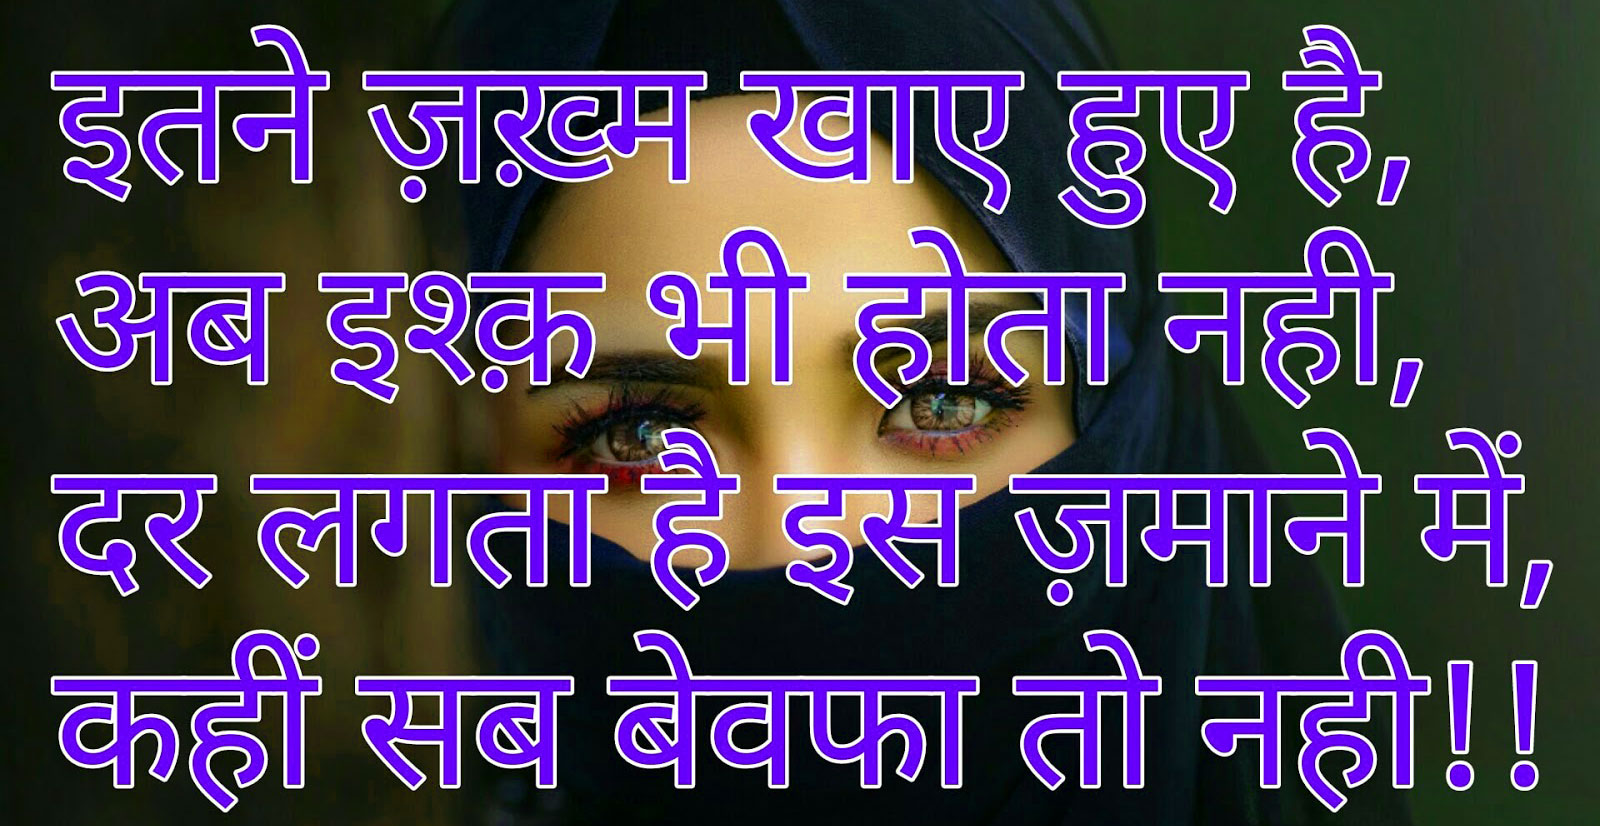 Hindi-Bewafa-Shayari-Images-54